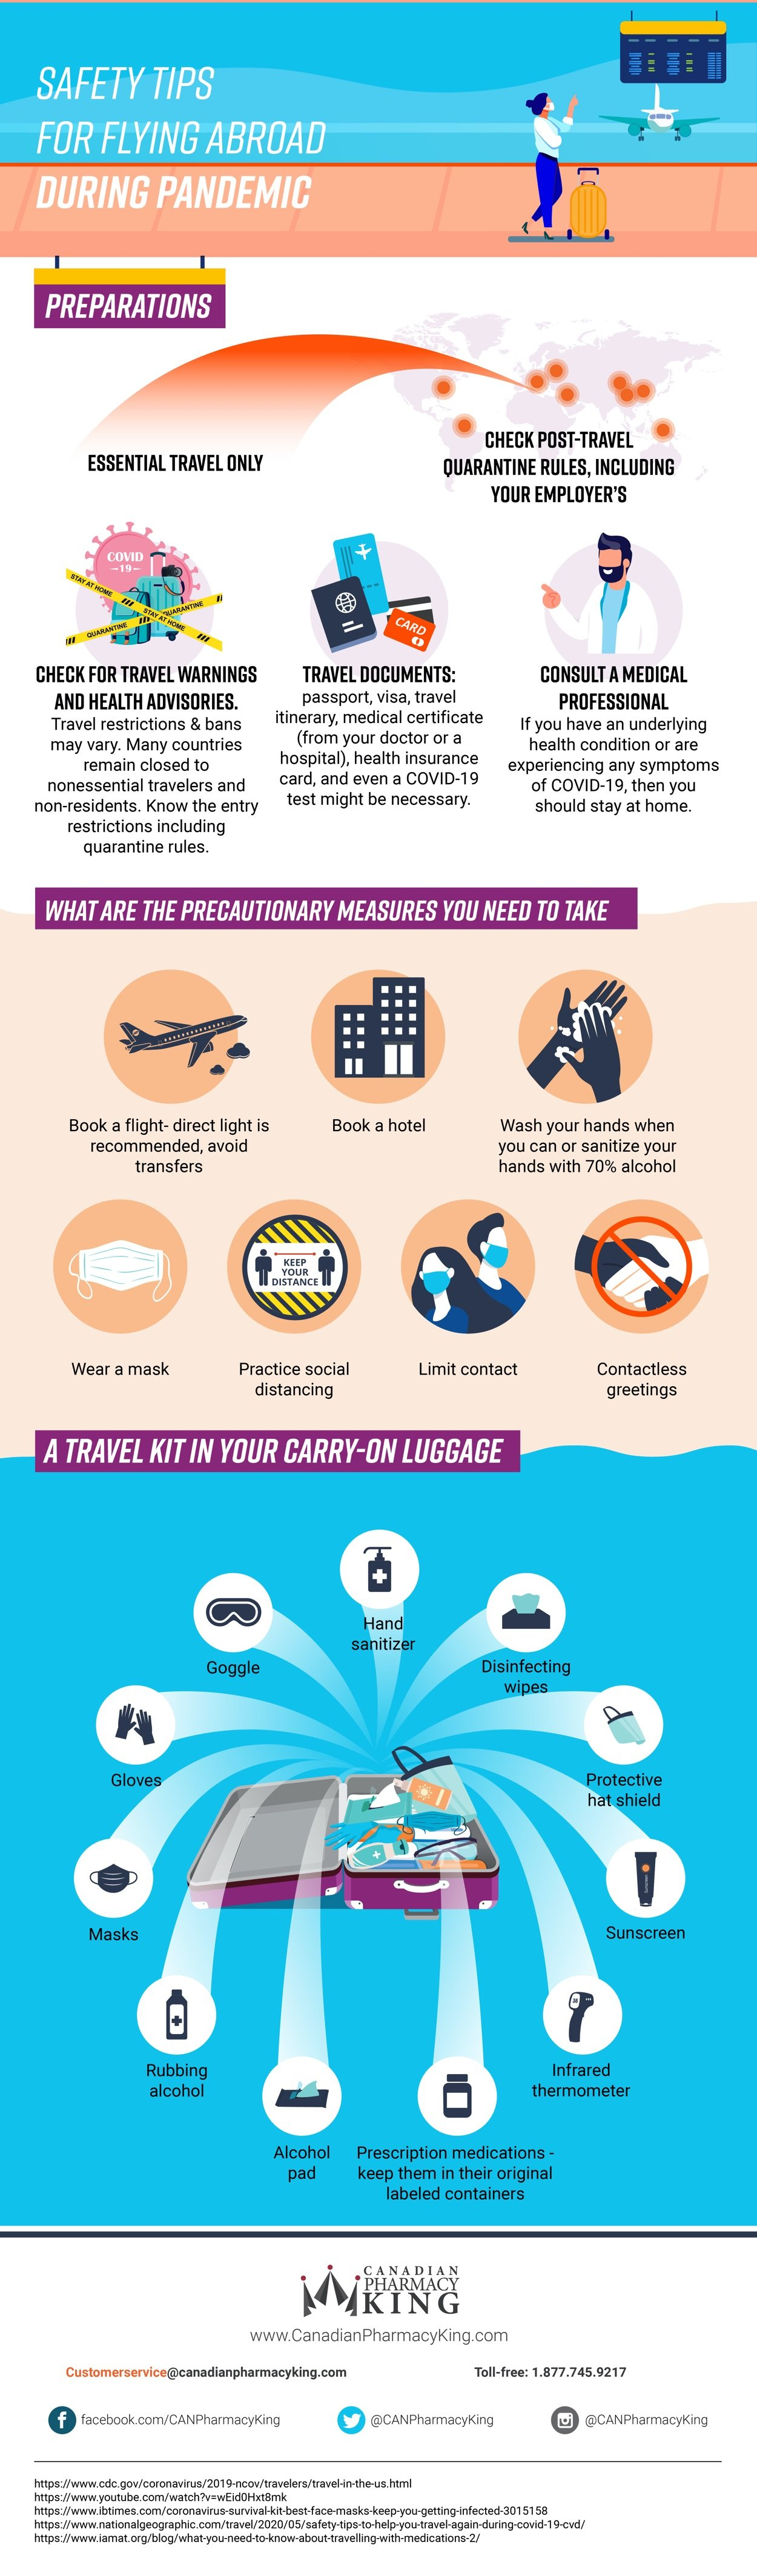 Safety Tips for Flying Abroad During the Pandemic